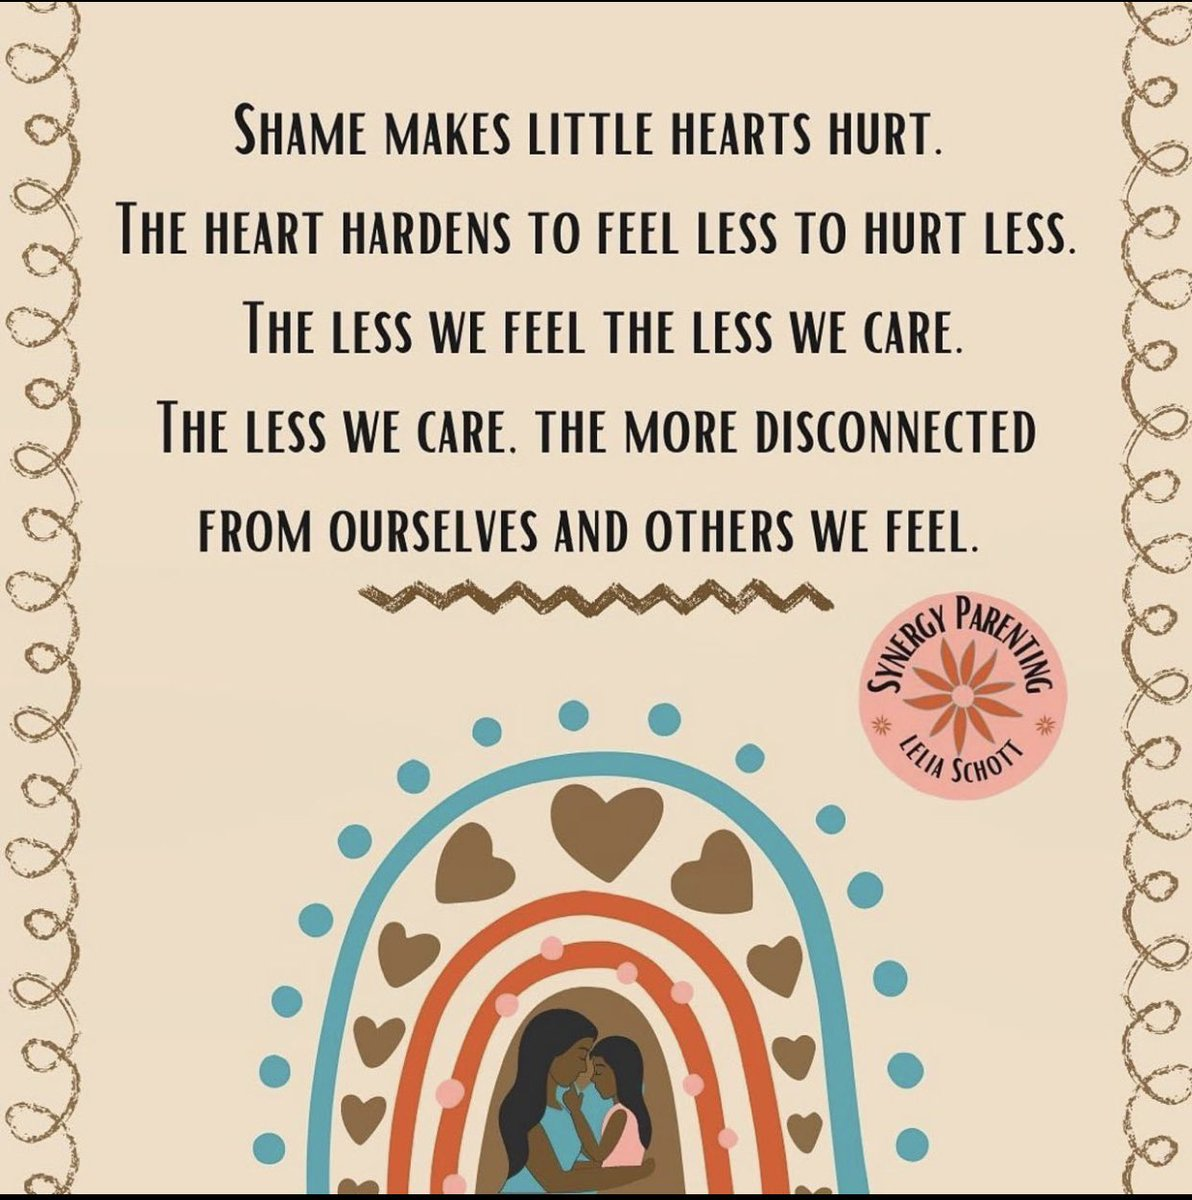 I read this through the lens of intergenerational trauma and found it quite powerful.  Let's heal and help others heal. #bewell https://t.co/jgLhG0cBX1